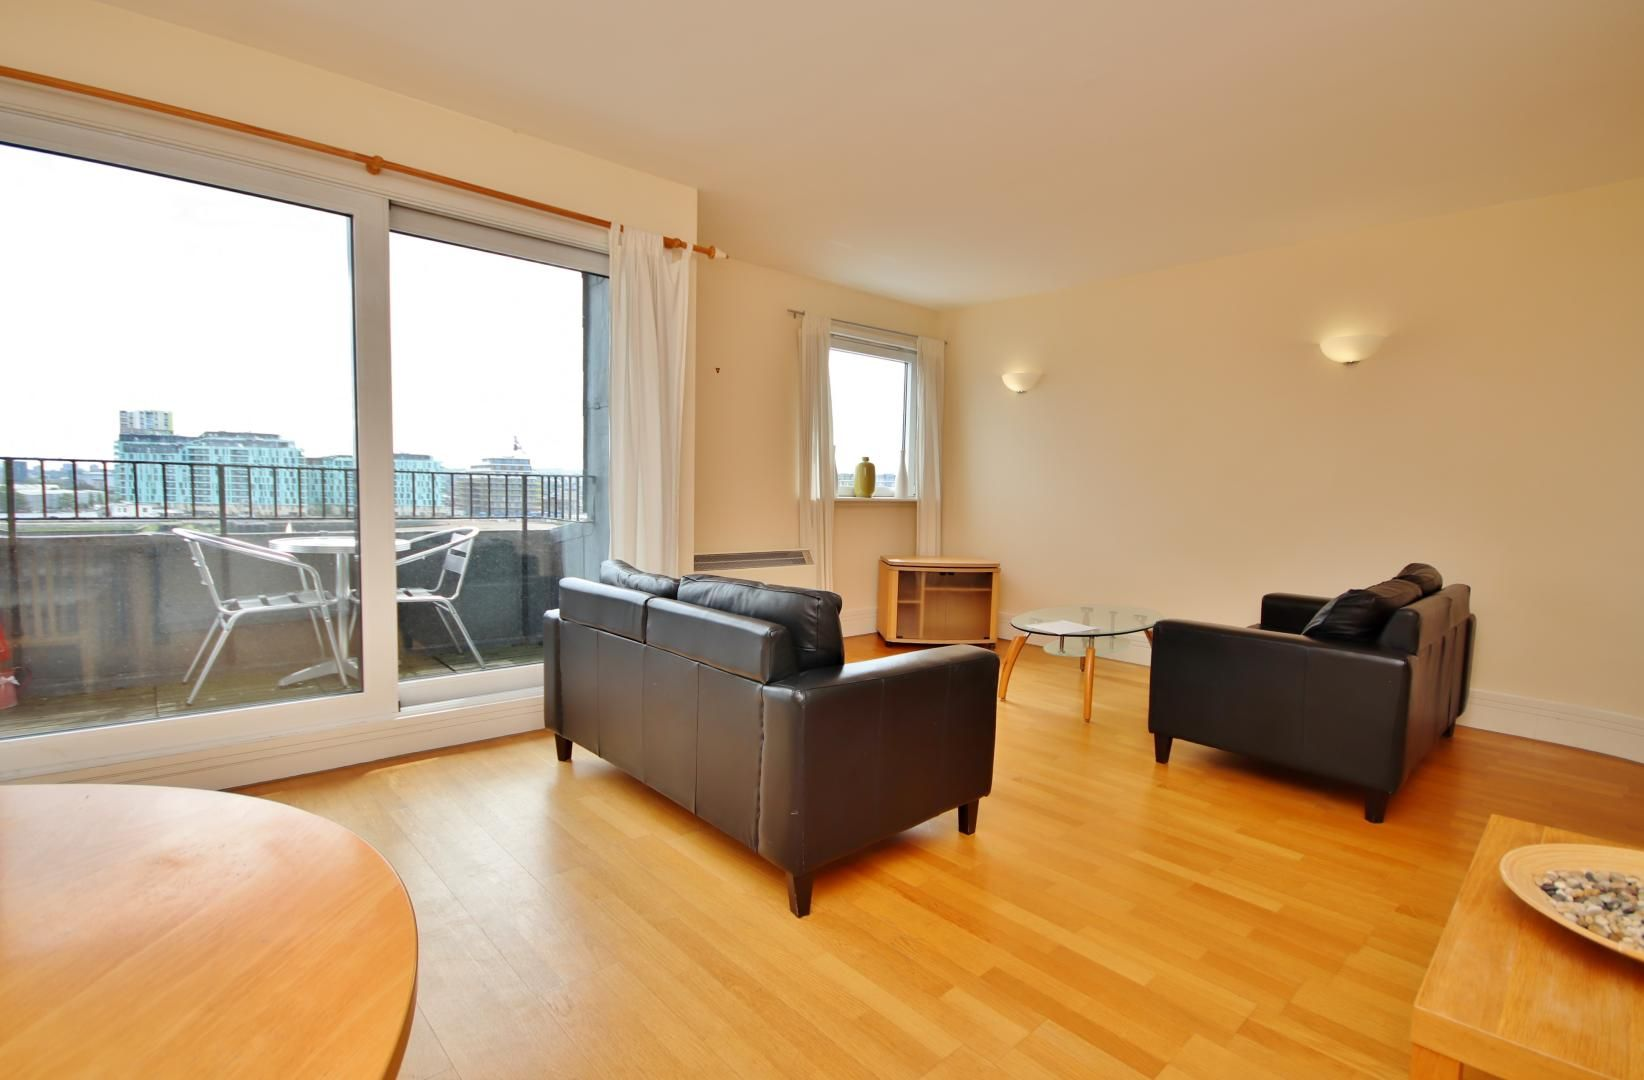 2 bed flat to rent in Cubitt Wharf, E14